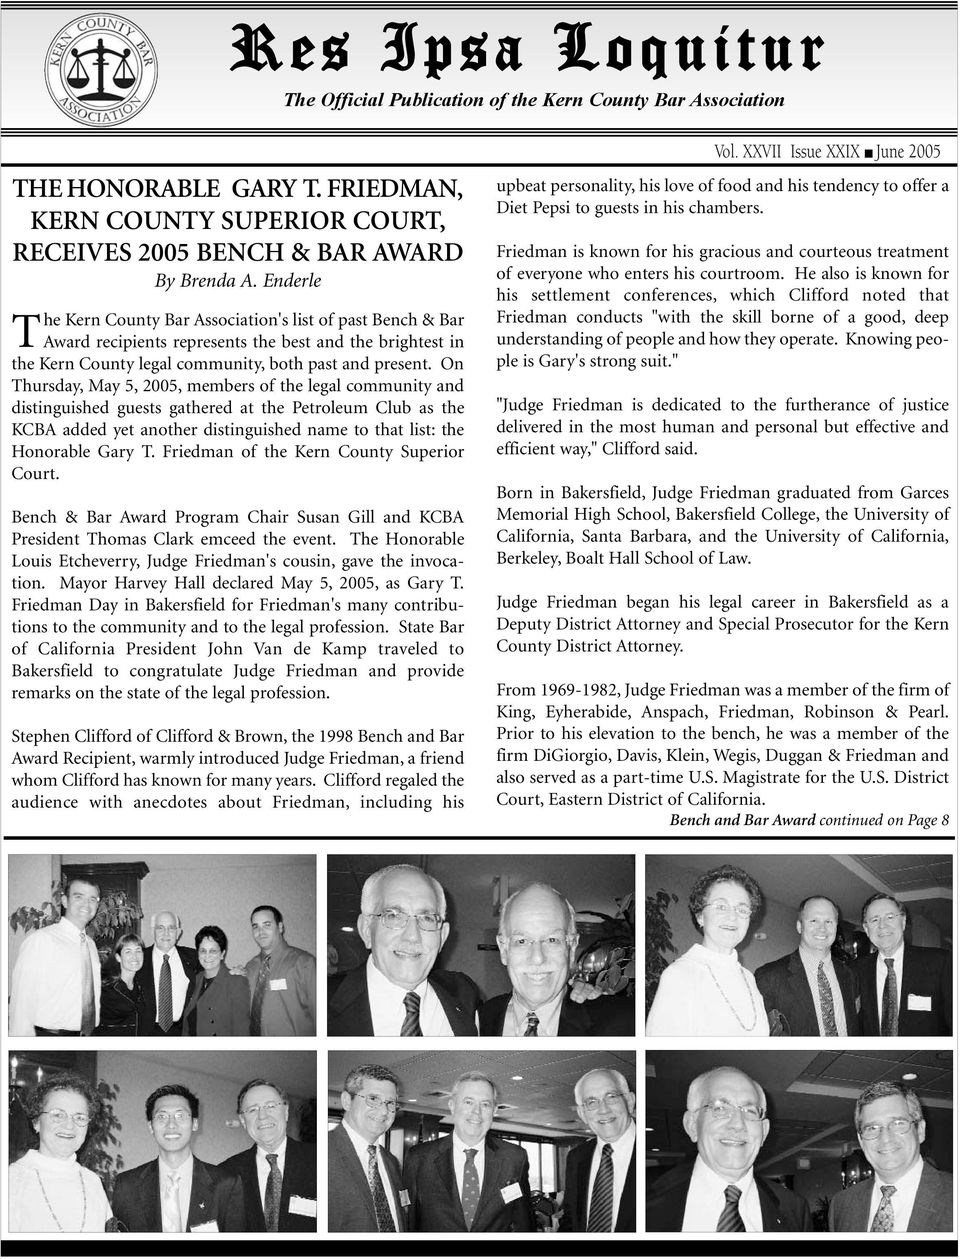 On Thursday, May 5, 2005, members of the legal community and distinguished guests gathered at the Petroleum Club as the KCBA added yet another distinguished name to that list: the Honorable Gary T.